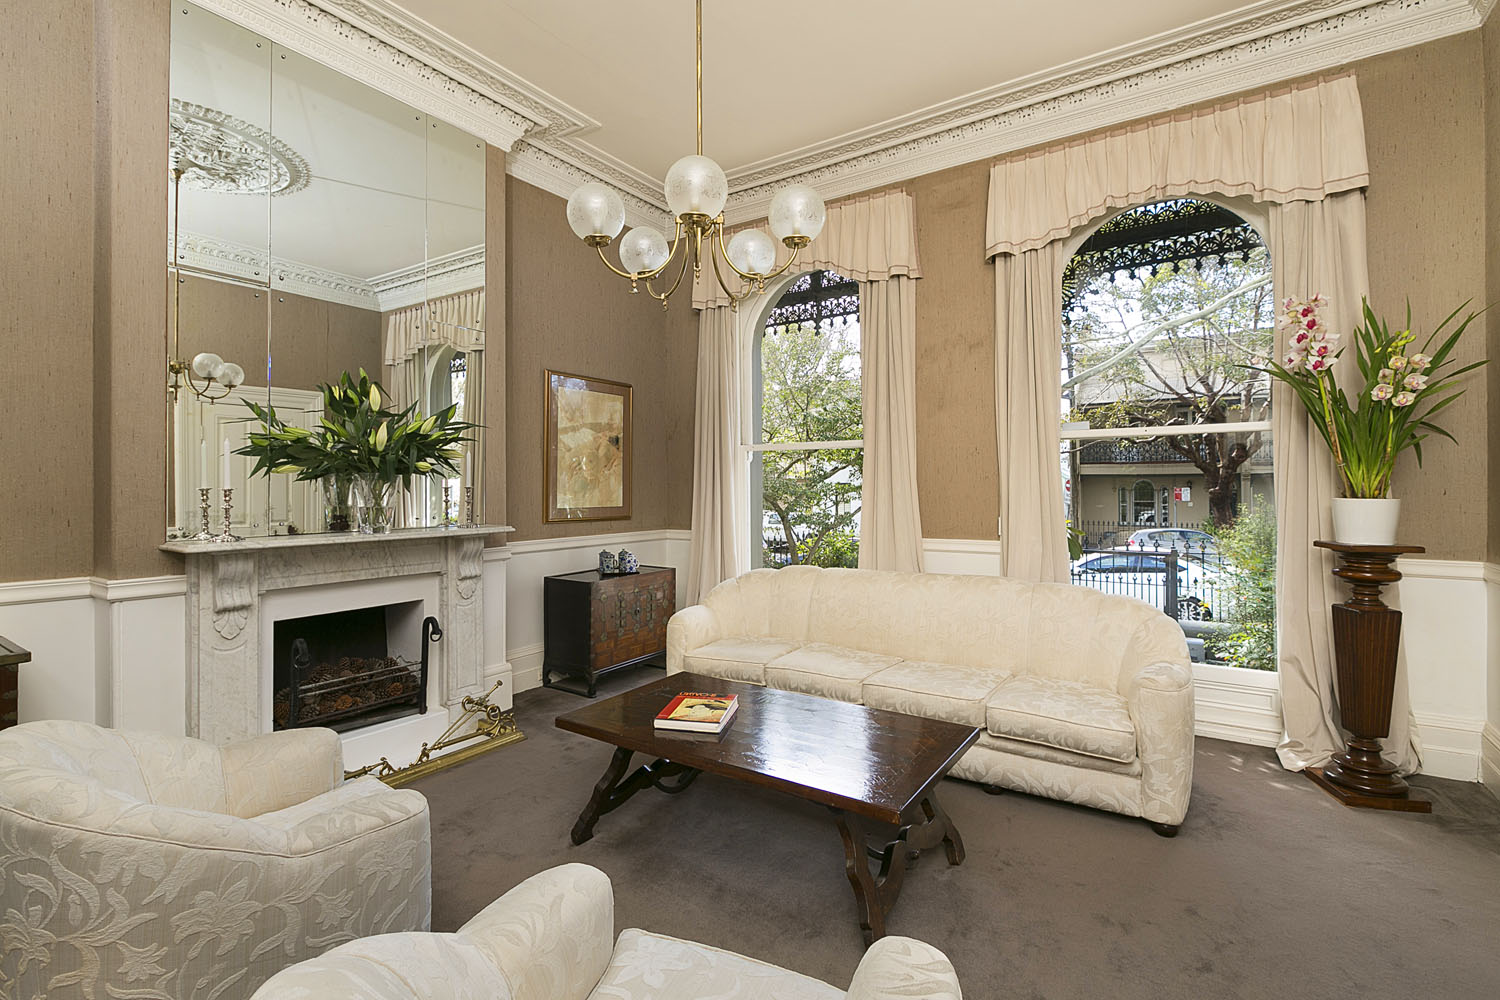 LOUNGE_12_Victoria_Ave_Woollahra.jpg